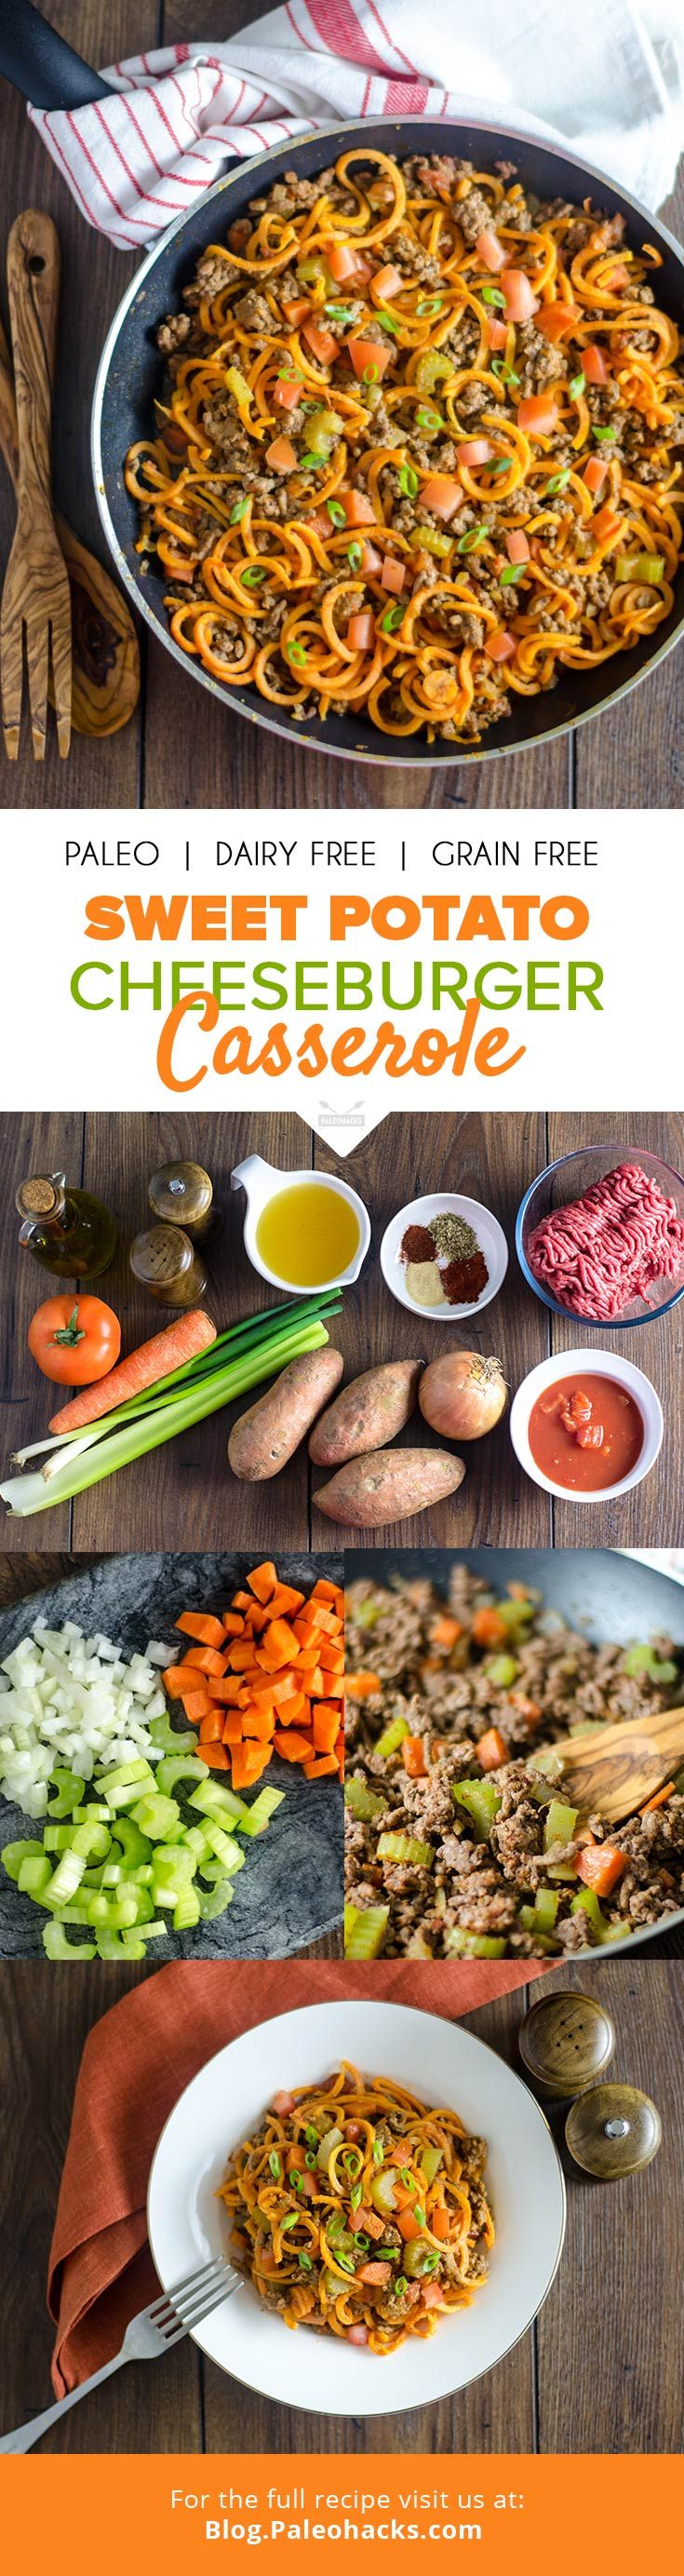 "This hearty dish puts a healthy spin on the classic cheeseburger casserole! For more Paleo recipe ideas grab our FREE ""Paleo Eats"" cookbook (just cover shipping costs). You can grab your copy here: paleorecipeteam.com/paleo-eats"